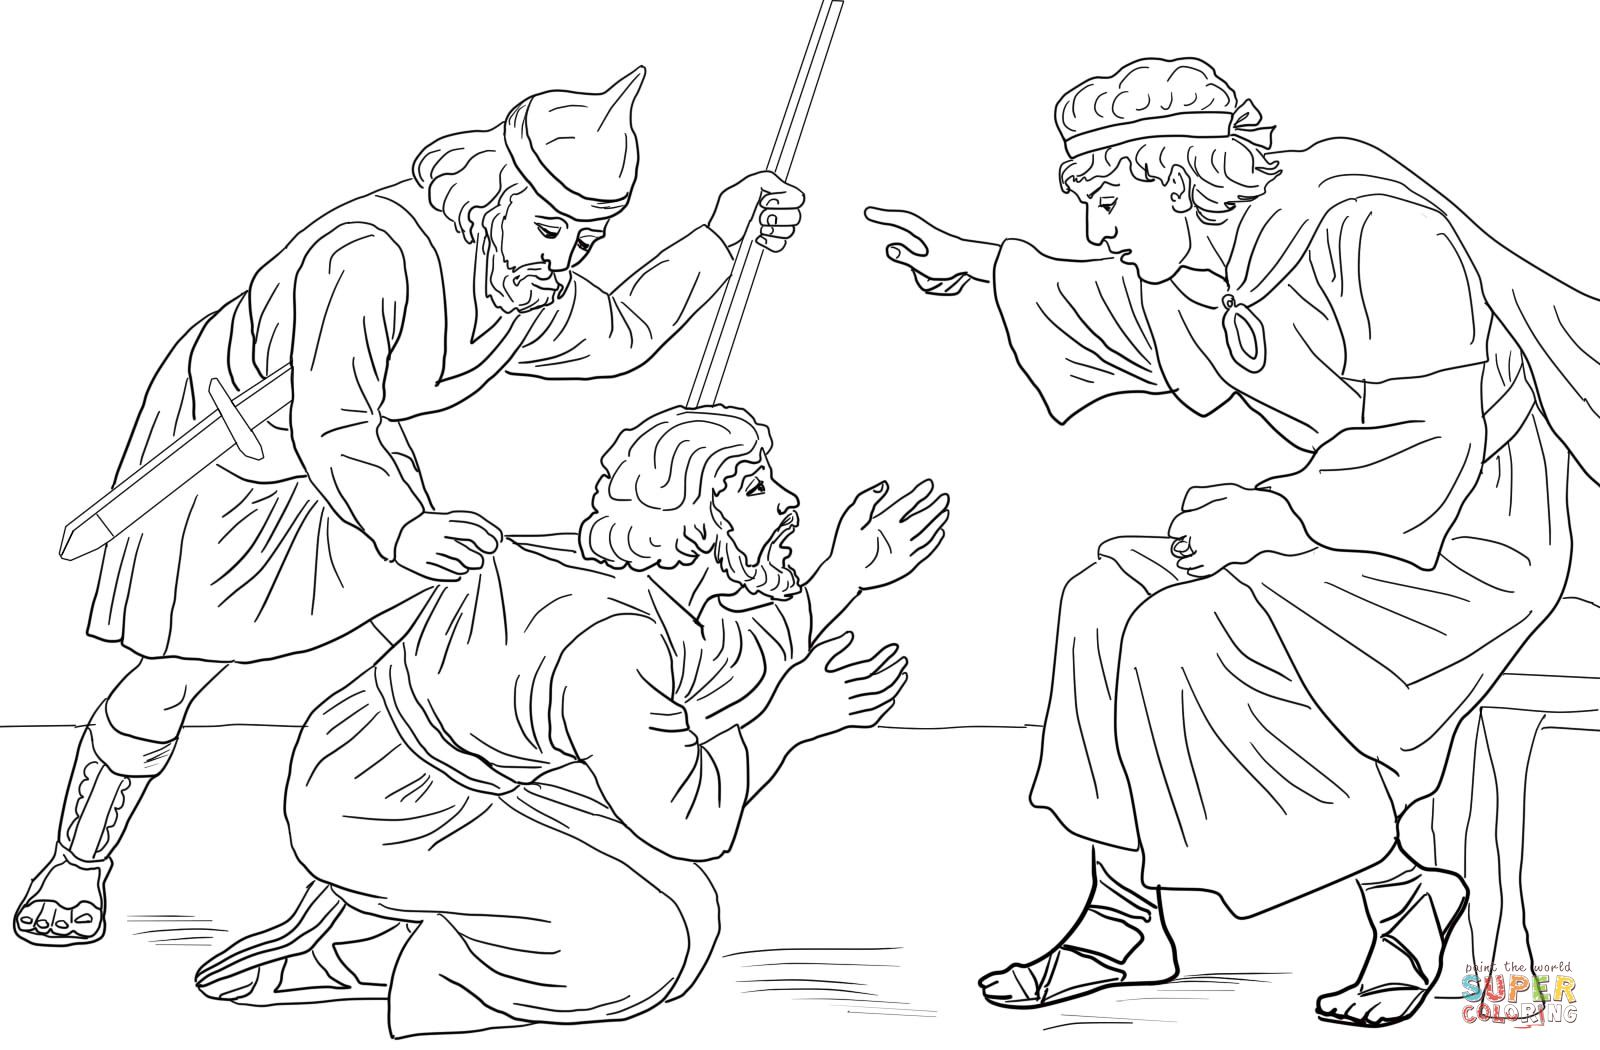 Coloring Page For Parable Of The Unmerciful Servant